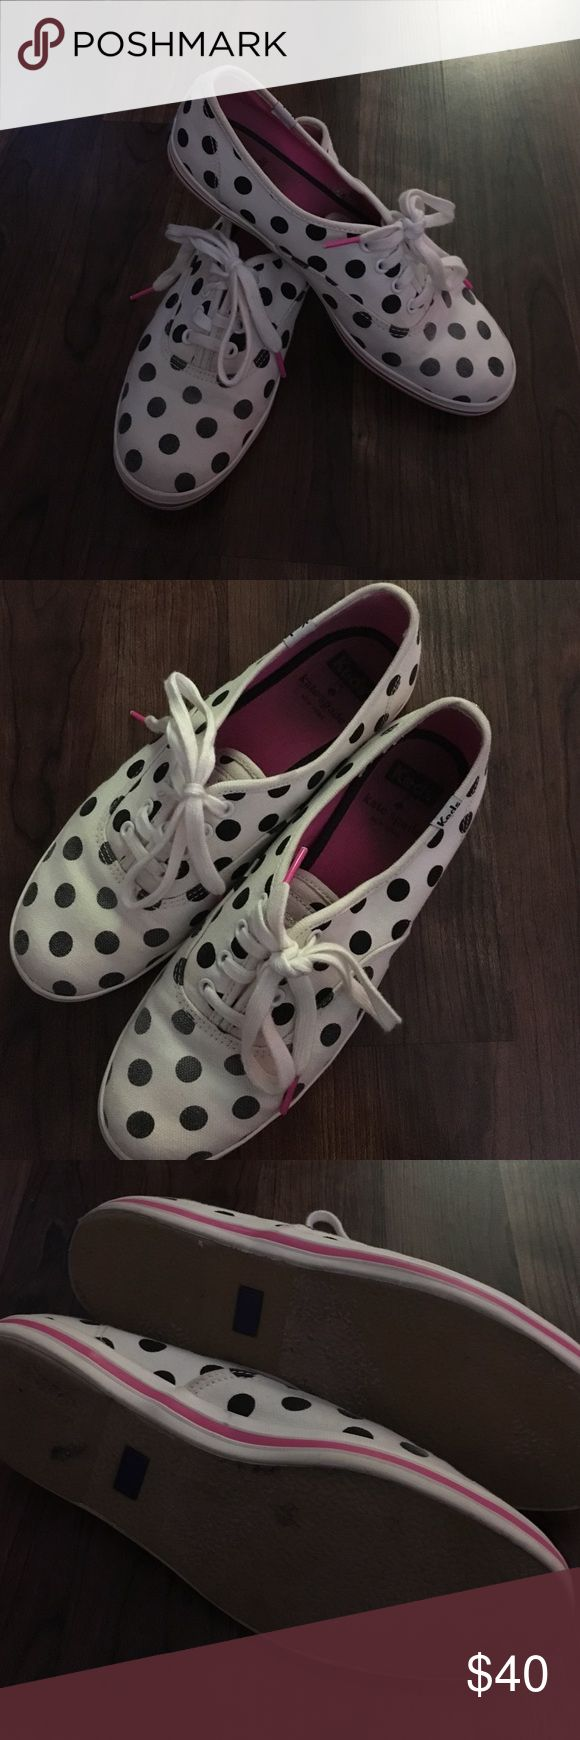 Kate spade for Keds sneakers polkadots size 7 Wonder sneakers by Keds and Kate Spade. White with black dots all over. Insides have slight wear, soles have almost no wear, and no stains kate spade Shoes Sneakers